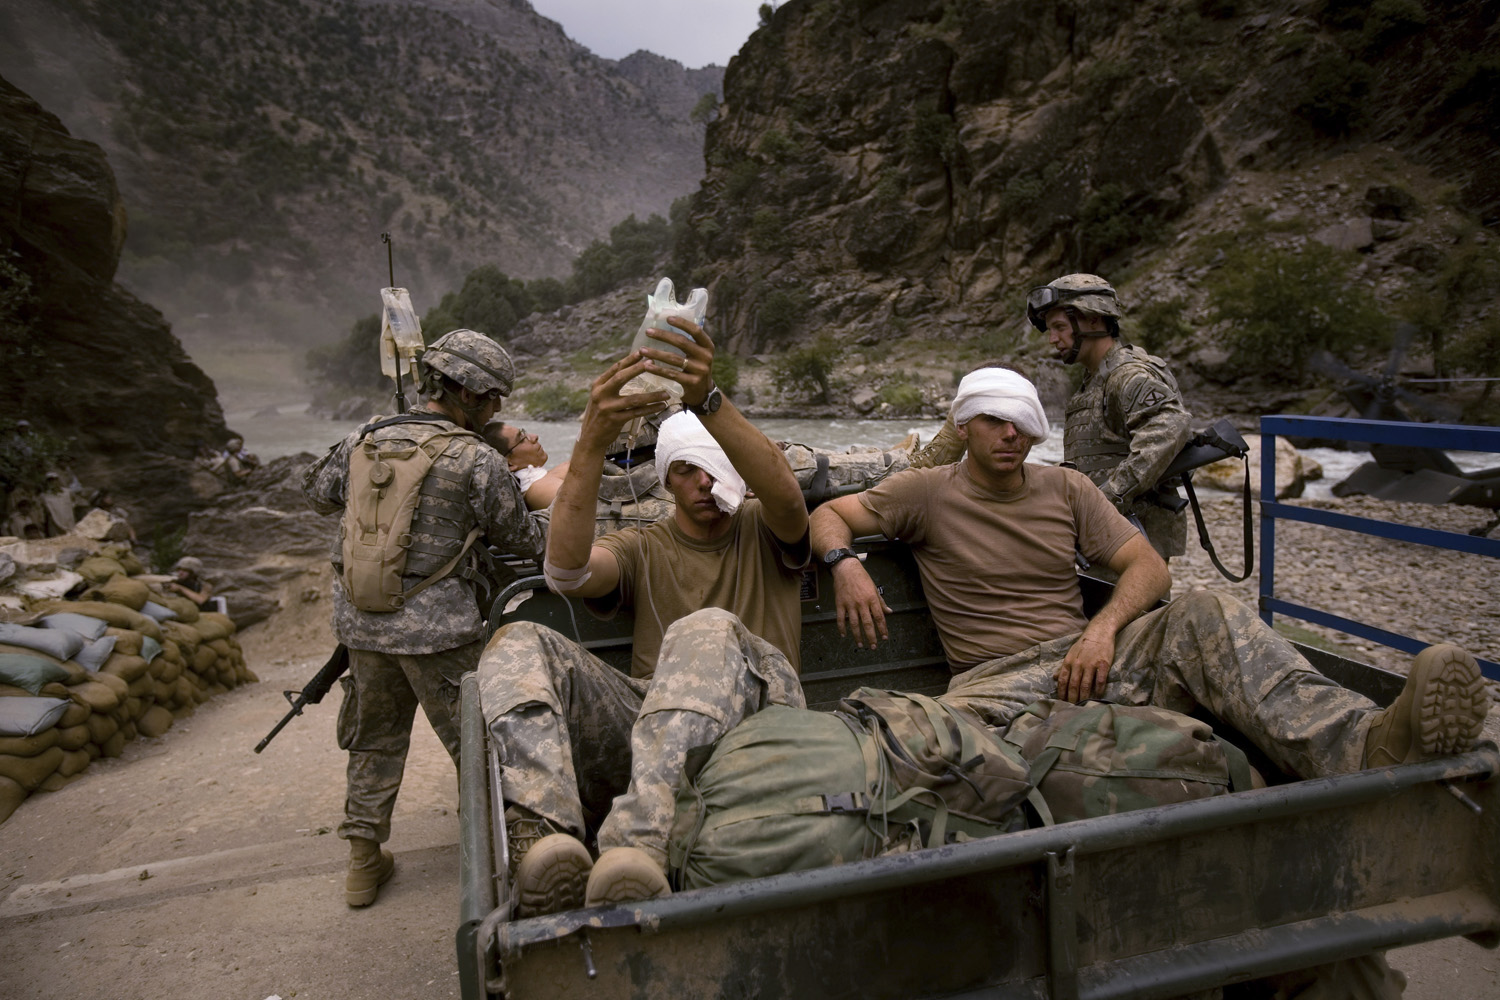 August 2006: Three wounded U.S. Army soldiers from the 10th Mountain Division await evacuation by helicopter from Kamdesh, Nuristan province. They were ambushed and suffered wounds to their eyes and foreheads.